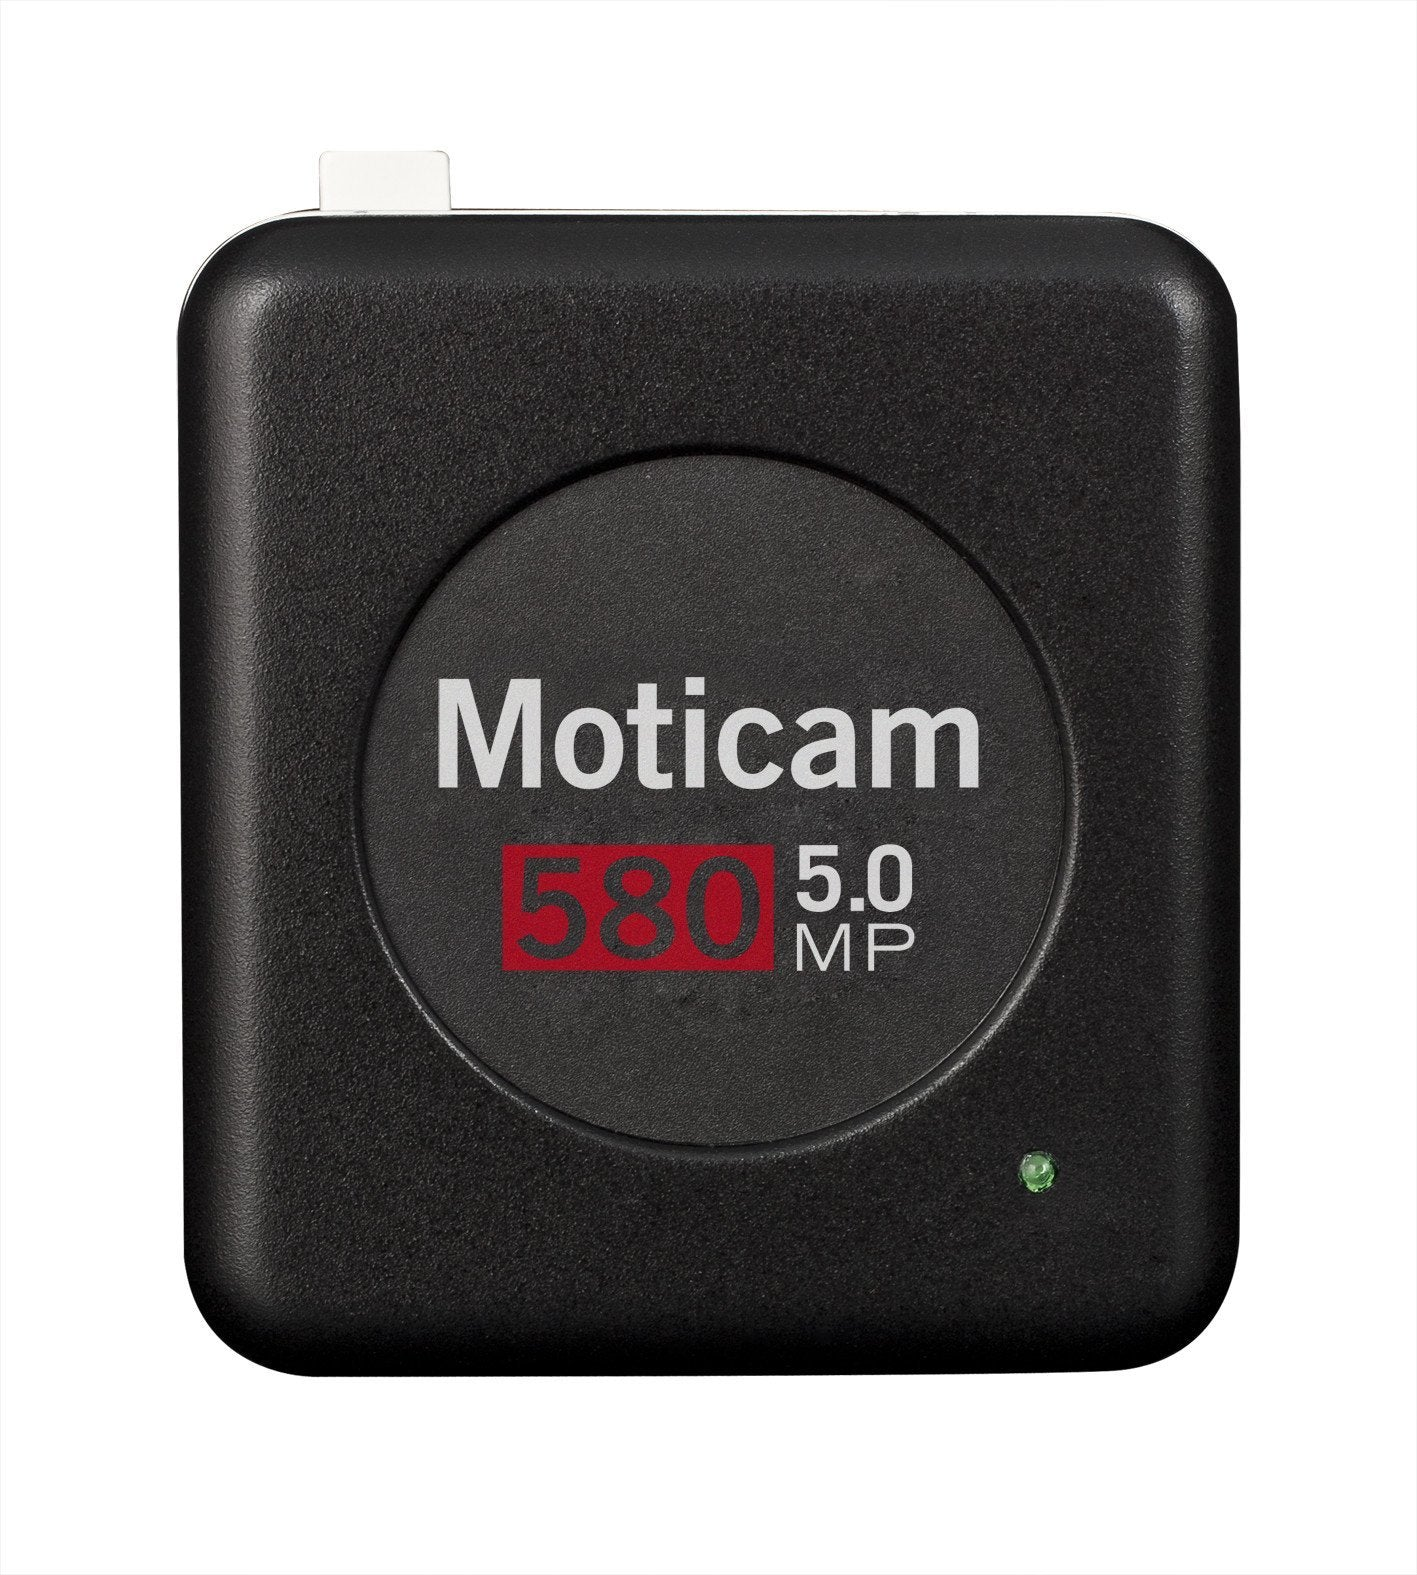 Moticam 580 HD Digital Microscope Camera